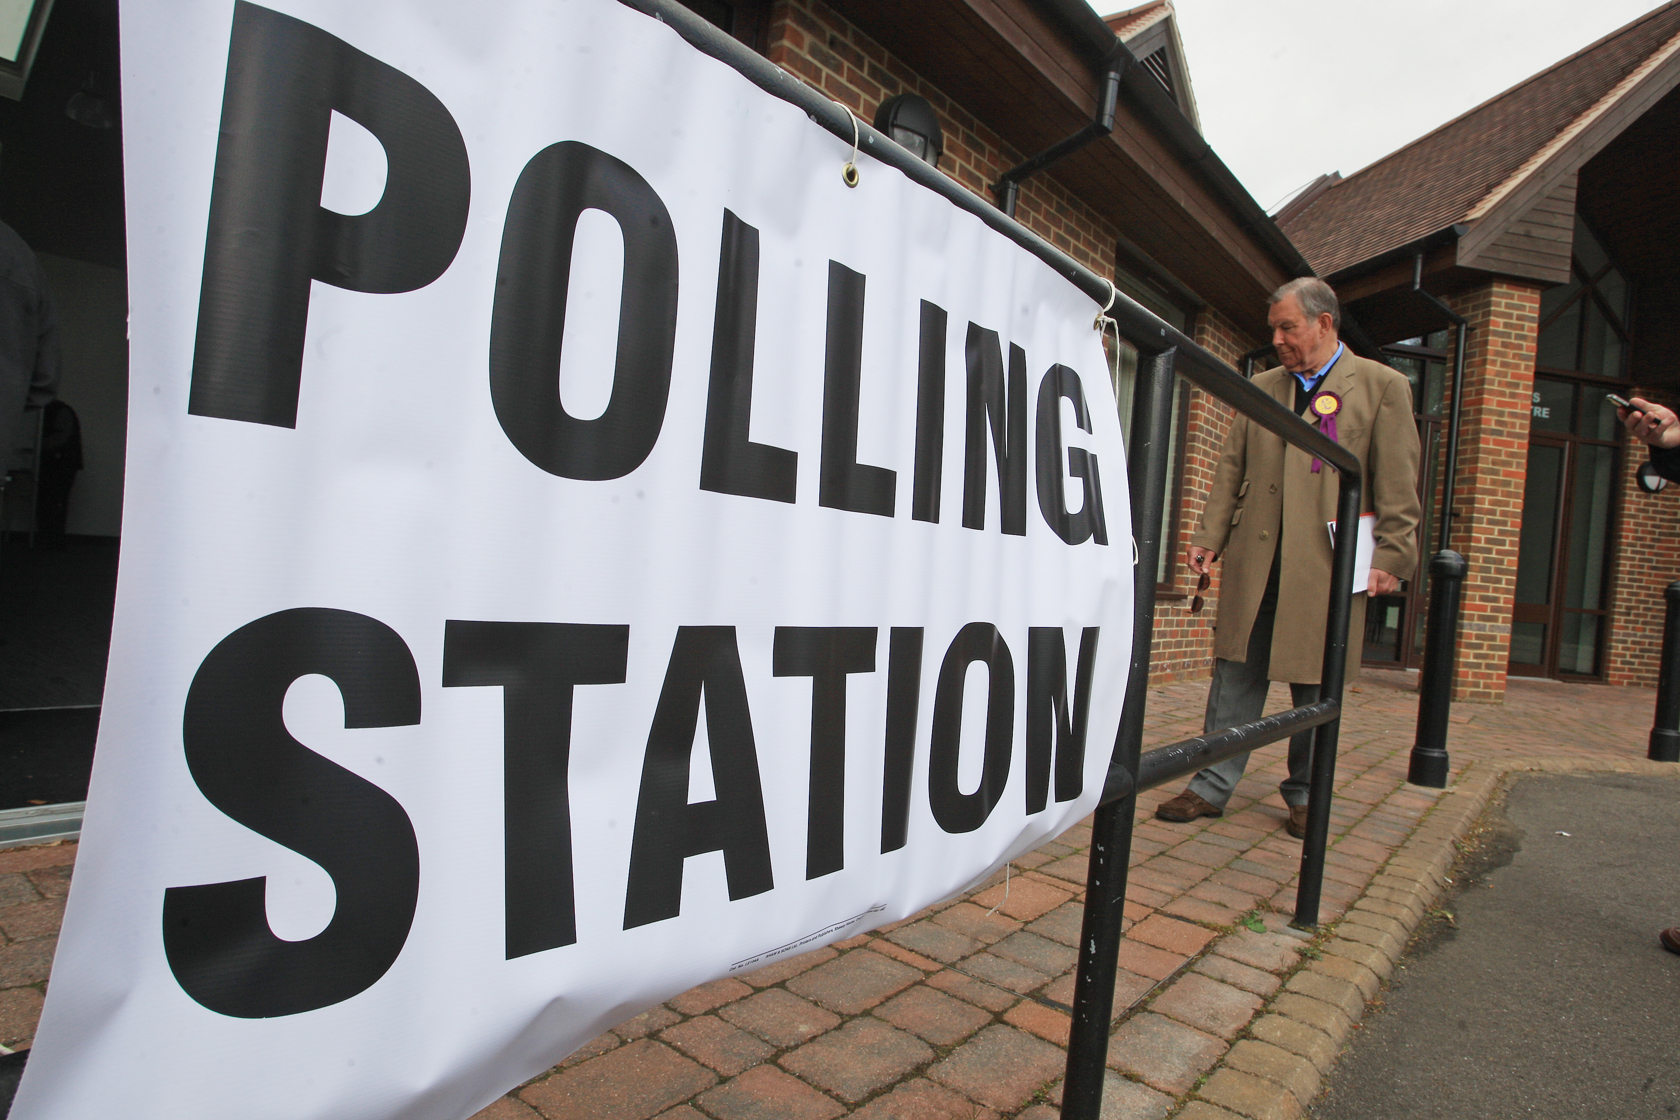 GENERAL ELECTION: Britain goes to the polls